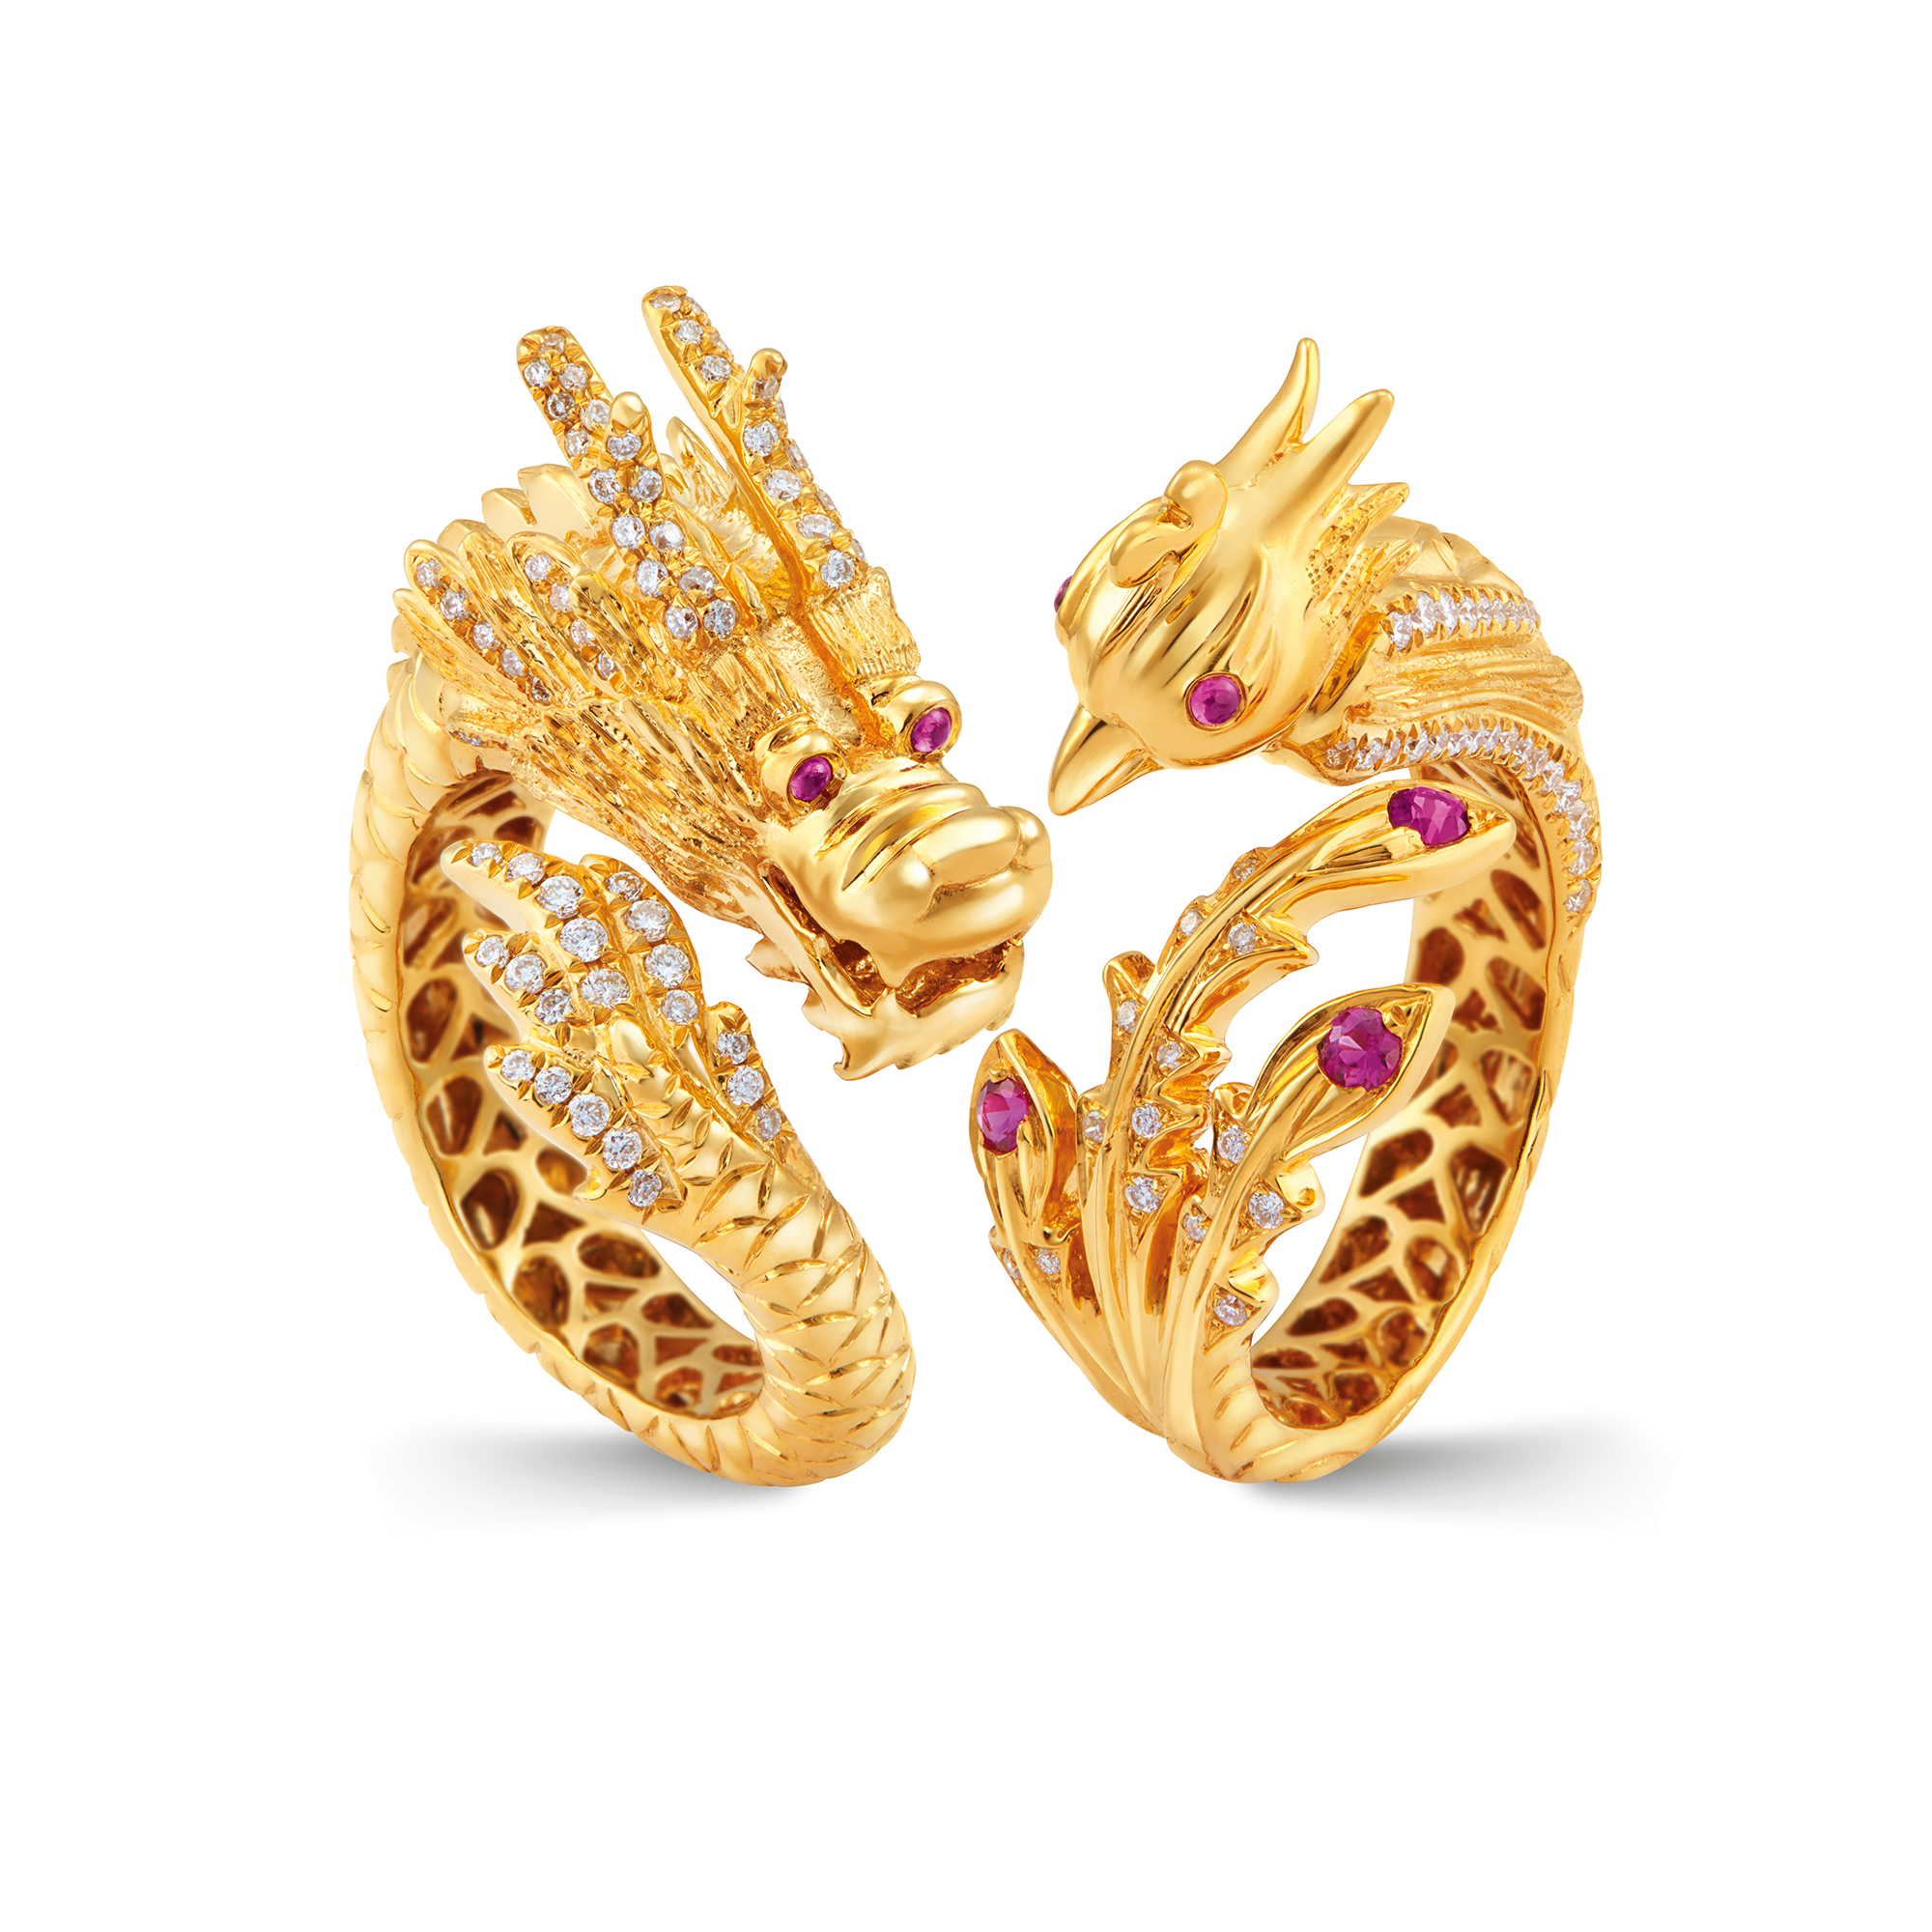 Dragon & Phoenix Rings